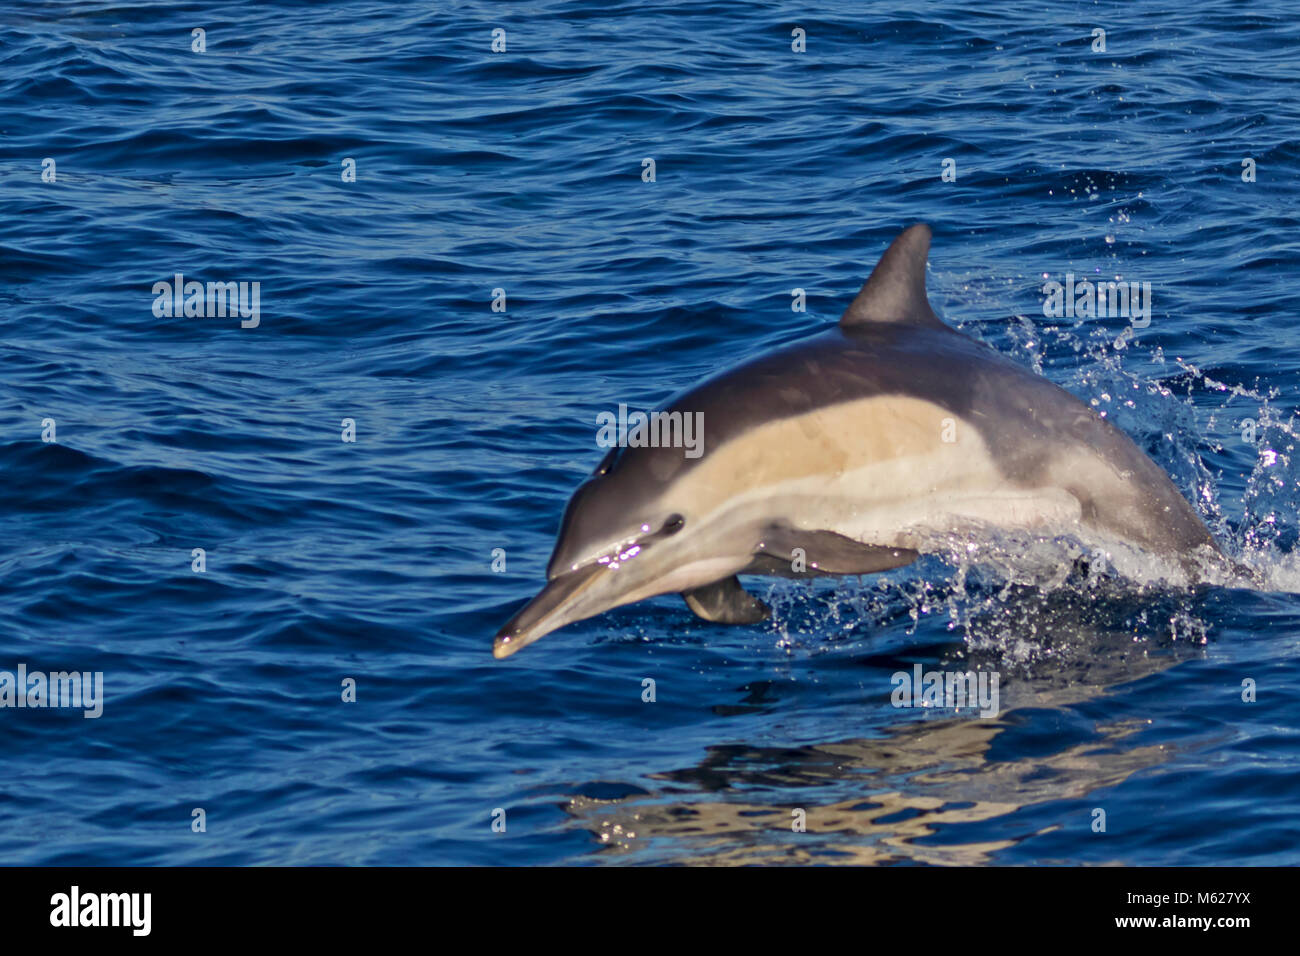 Dolphin jumping out of the Pacific Ocean - Stock Image